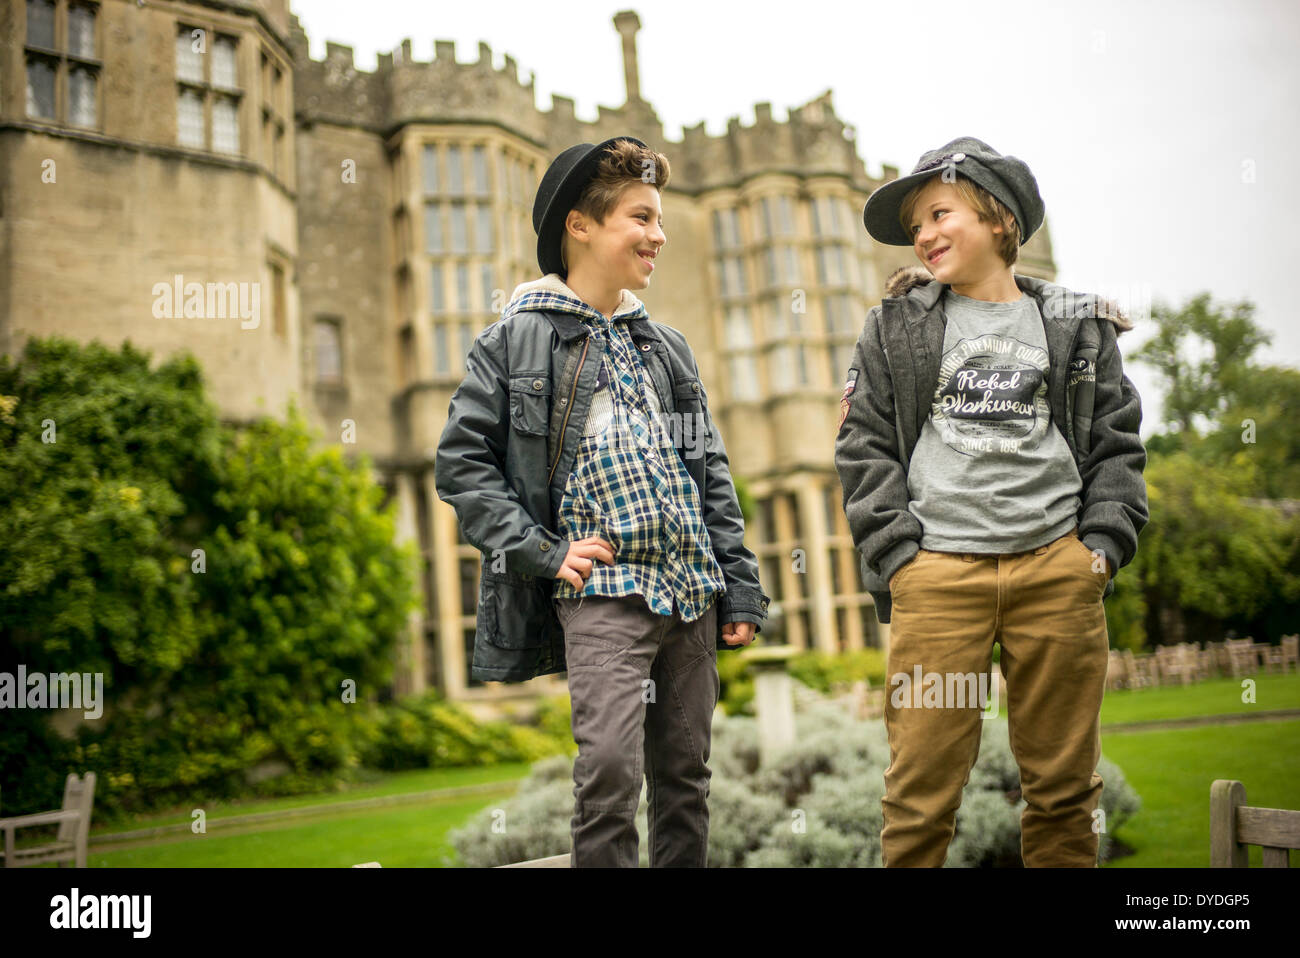 Two young boys outside at Thornbury Castle. - Stock Image